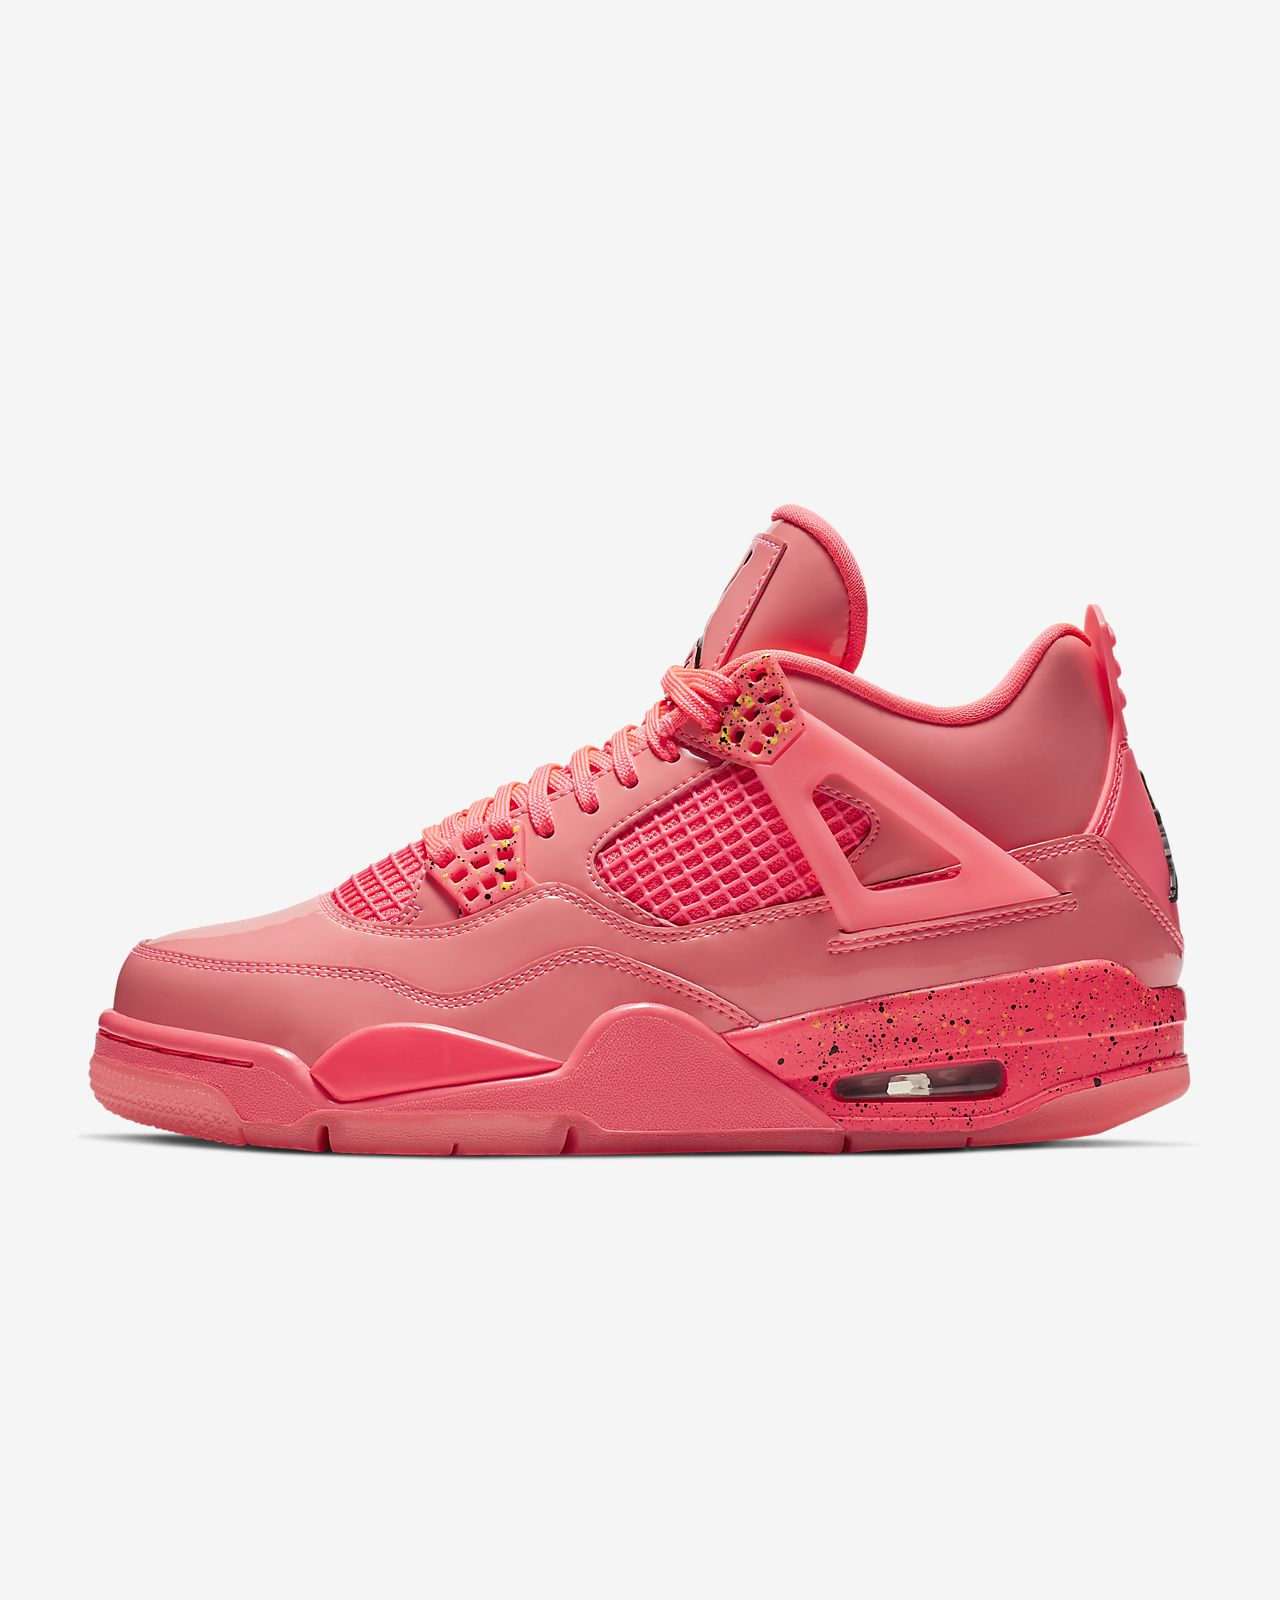 4d580747ad46 Air Jordan 4 Retro NRG Women s Shoe. Nike.com